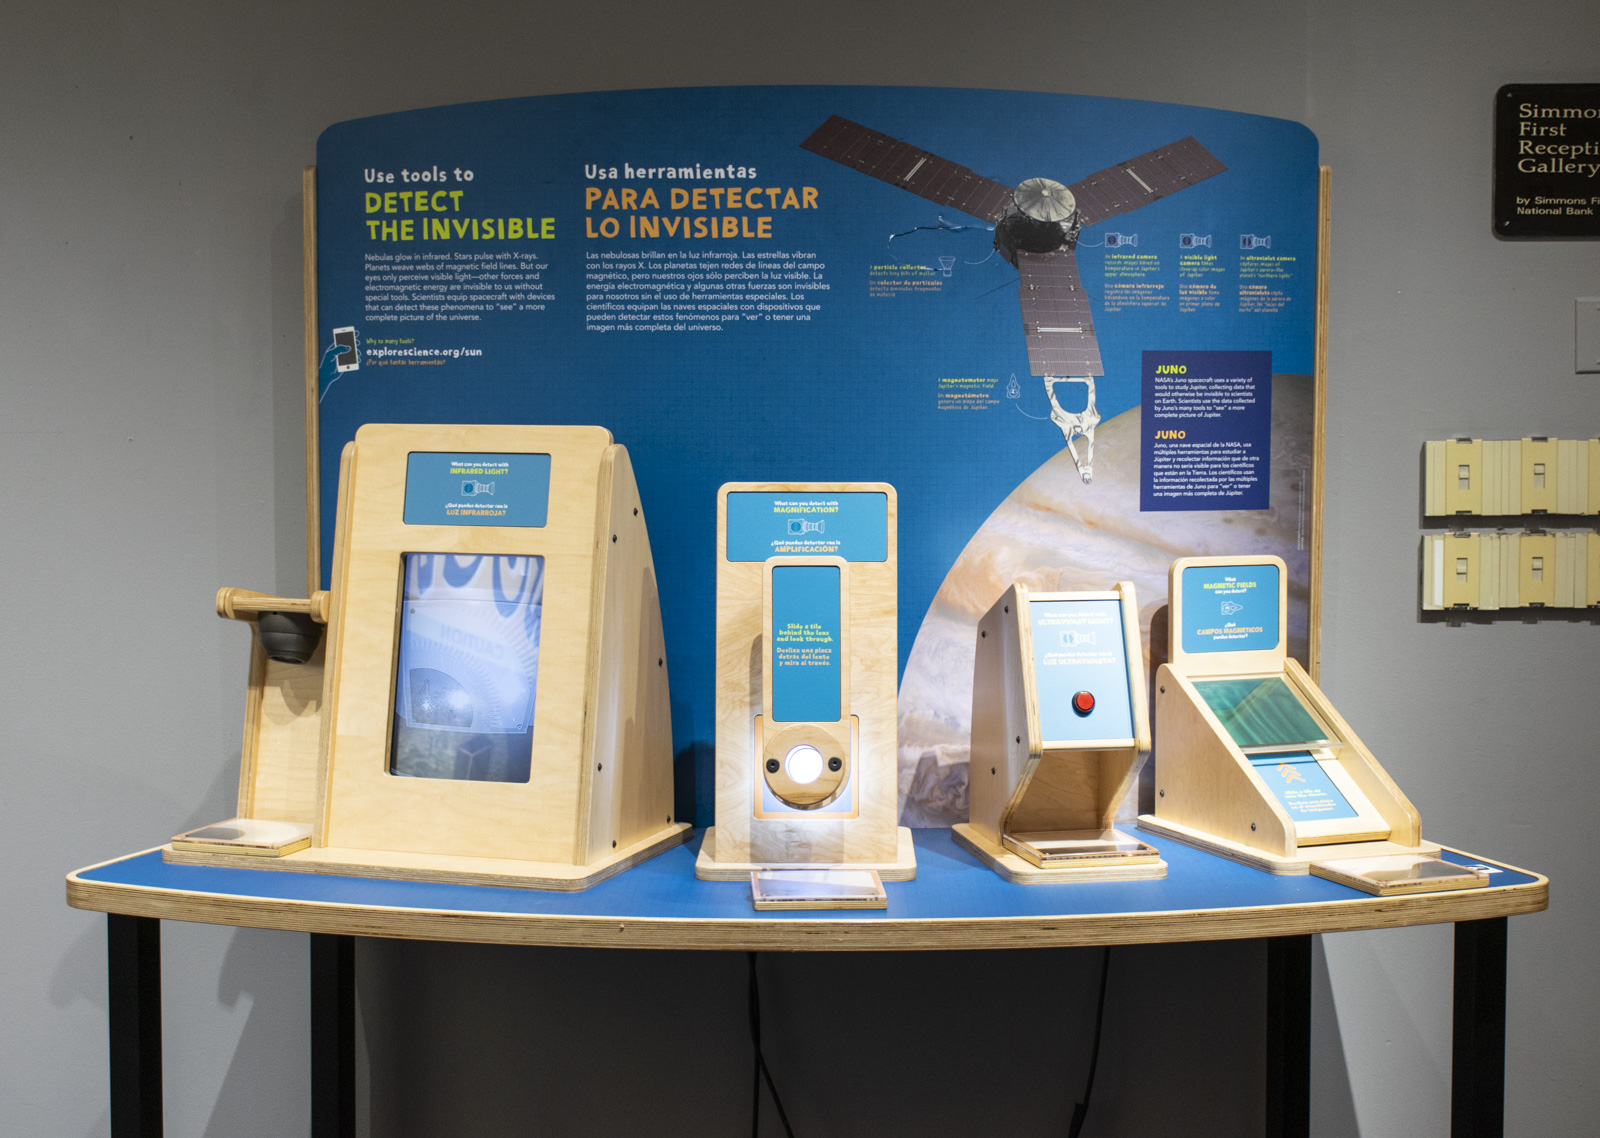 One of the stations in the Sun, Earth, Universe exhibitions lets visitors use an infrared camera, an ultraviolet (UV) light, a magnifying glass, and a magnetic field detector to reveal information not visible to human eyes.